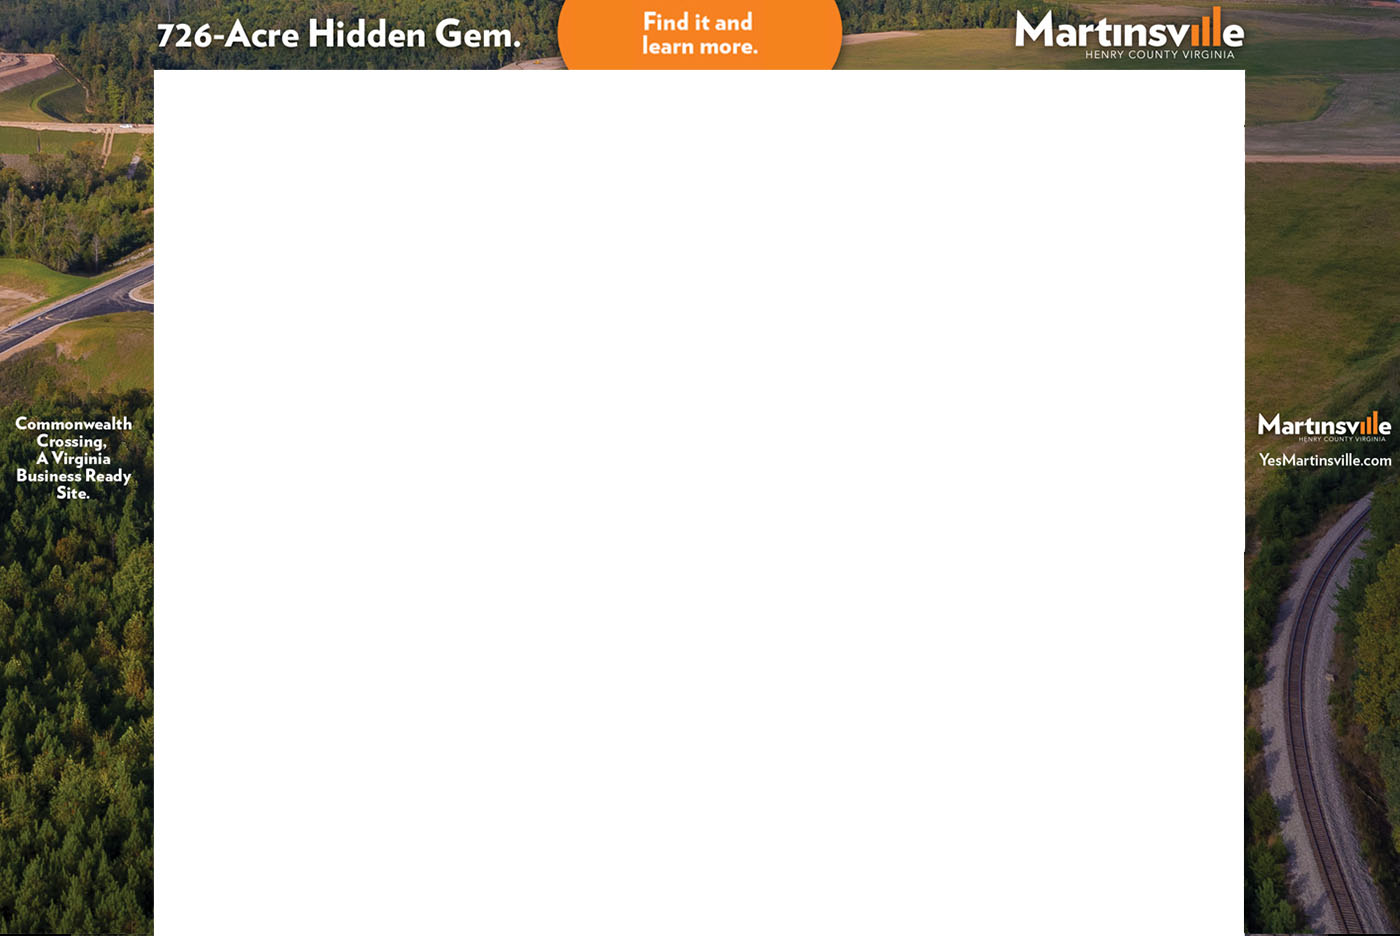 Martinsville-Henry County, VA – Wrapper